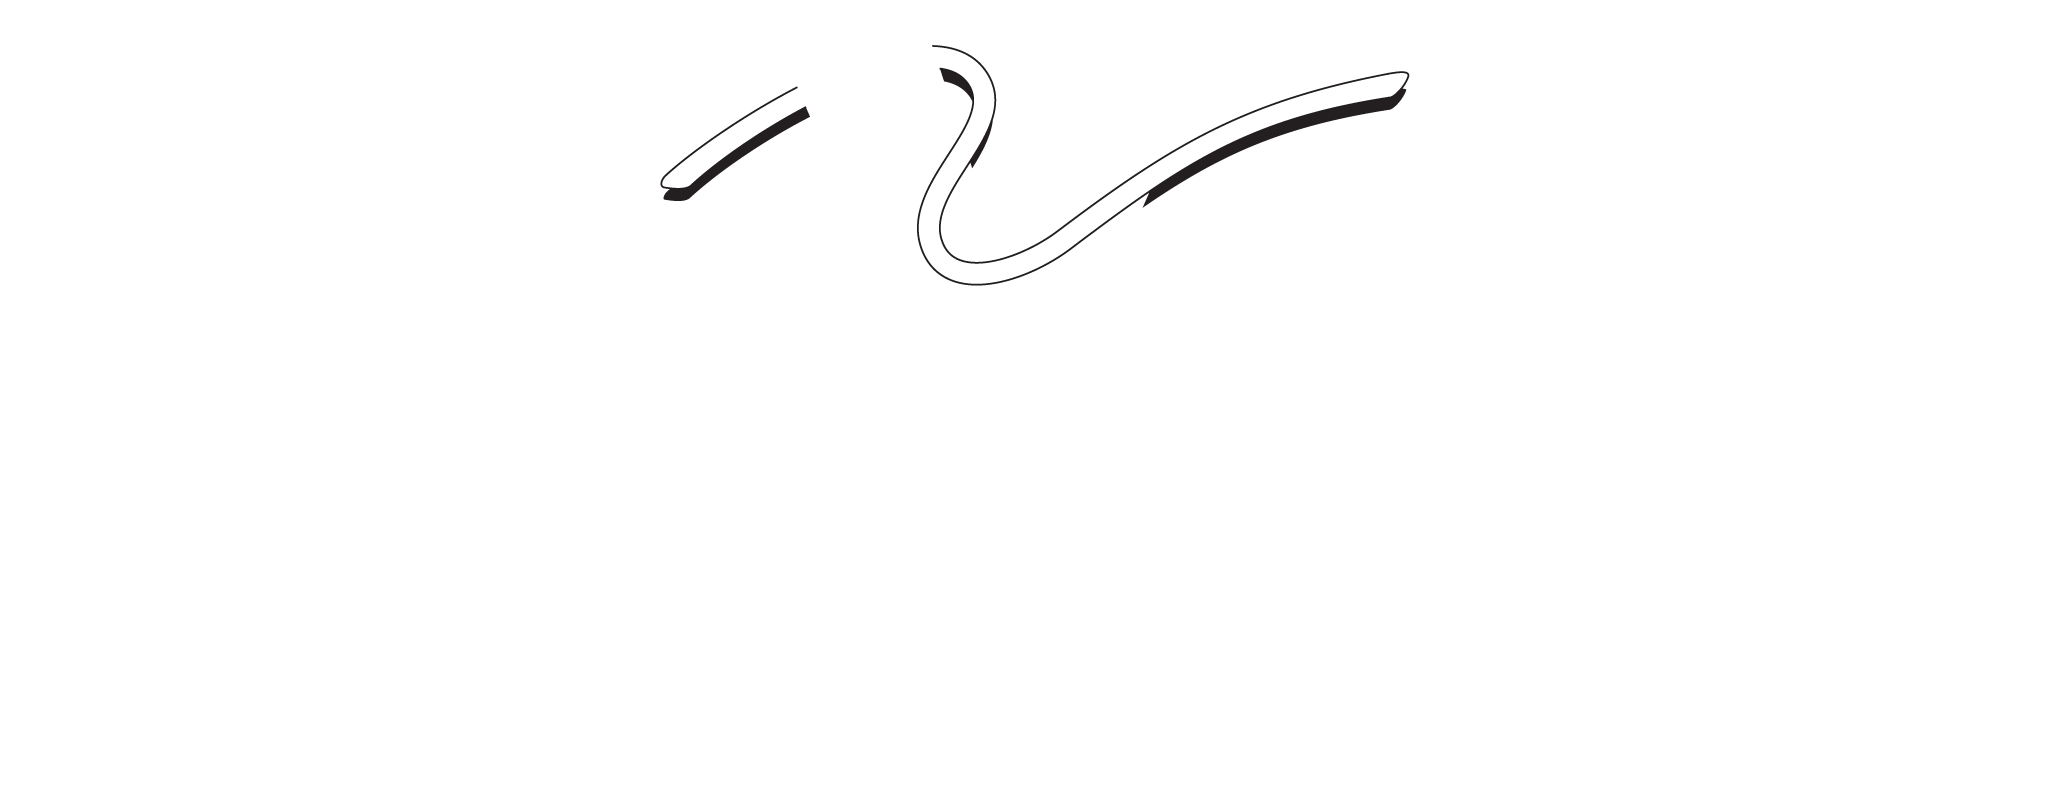 Jean Gaulin_BLANC (French-BW-stacked).png